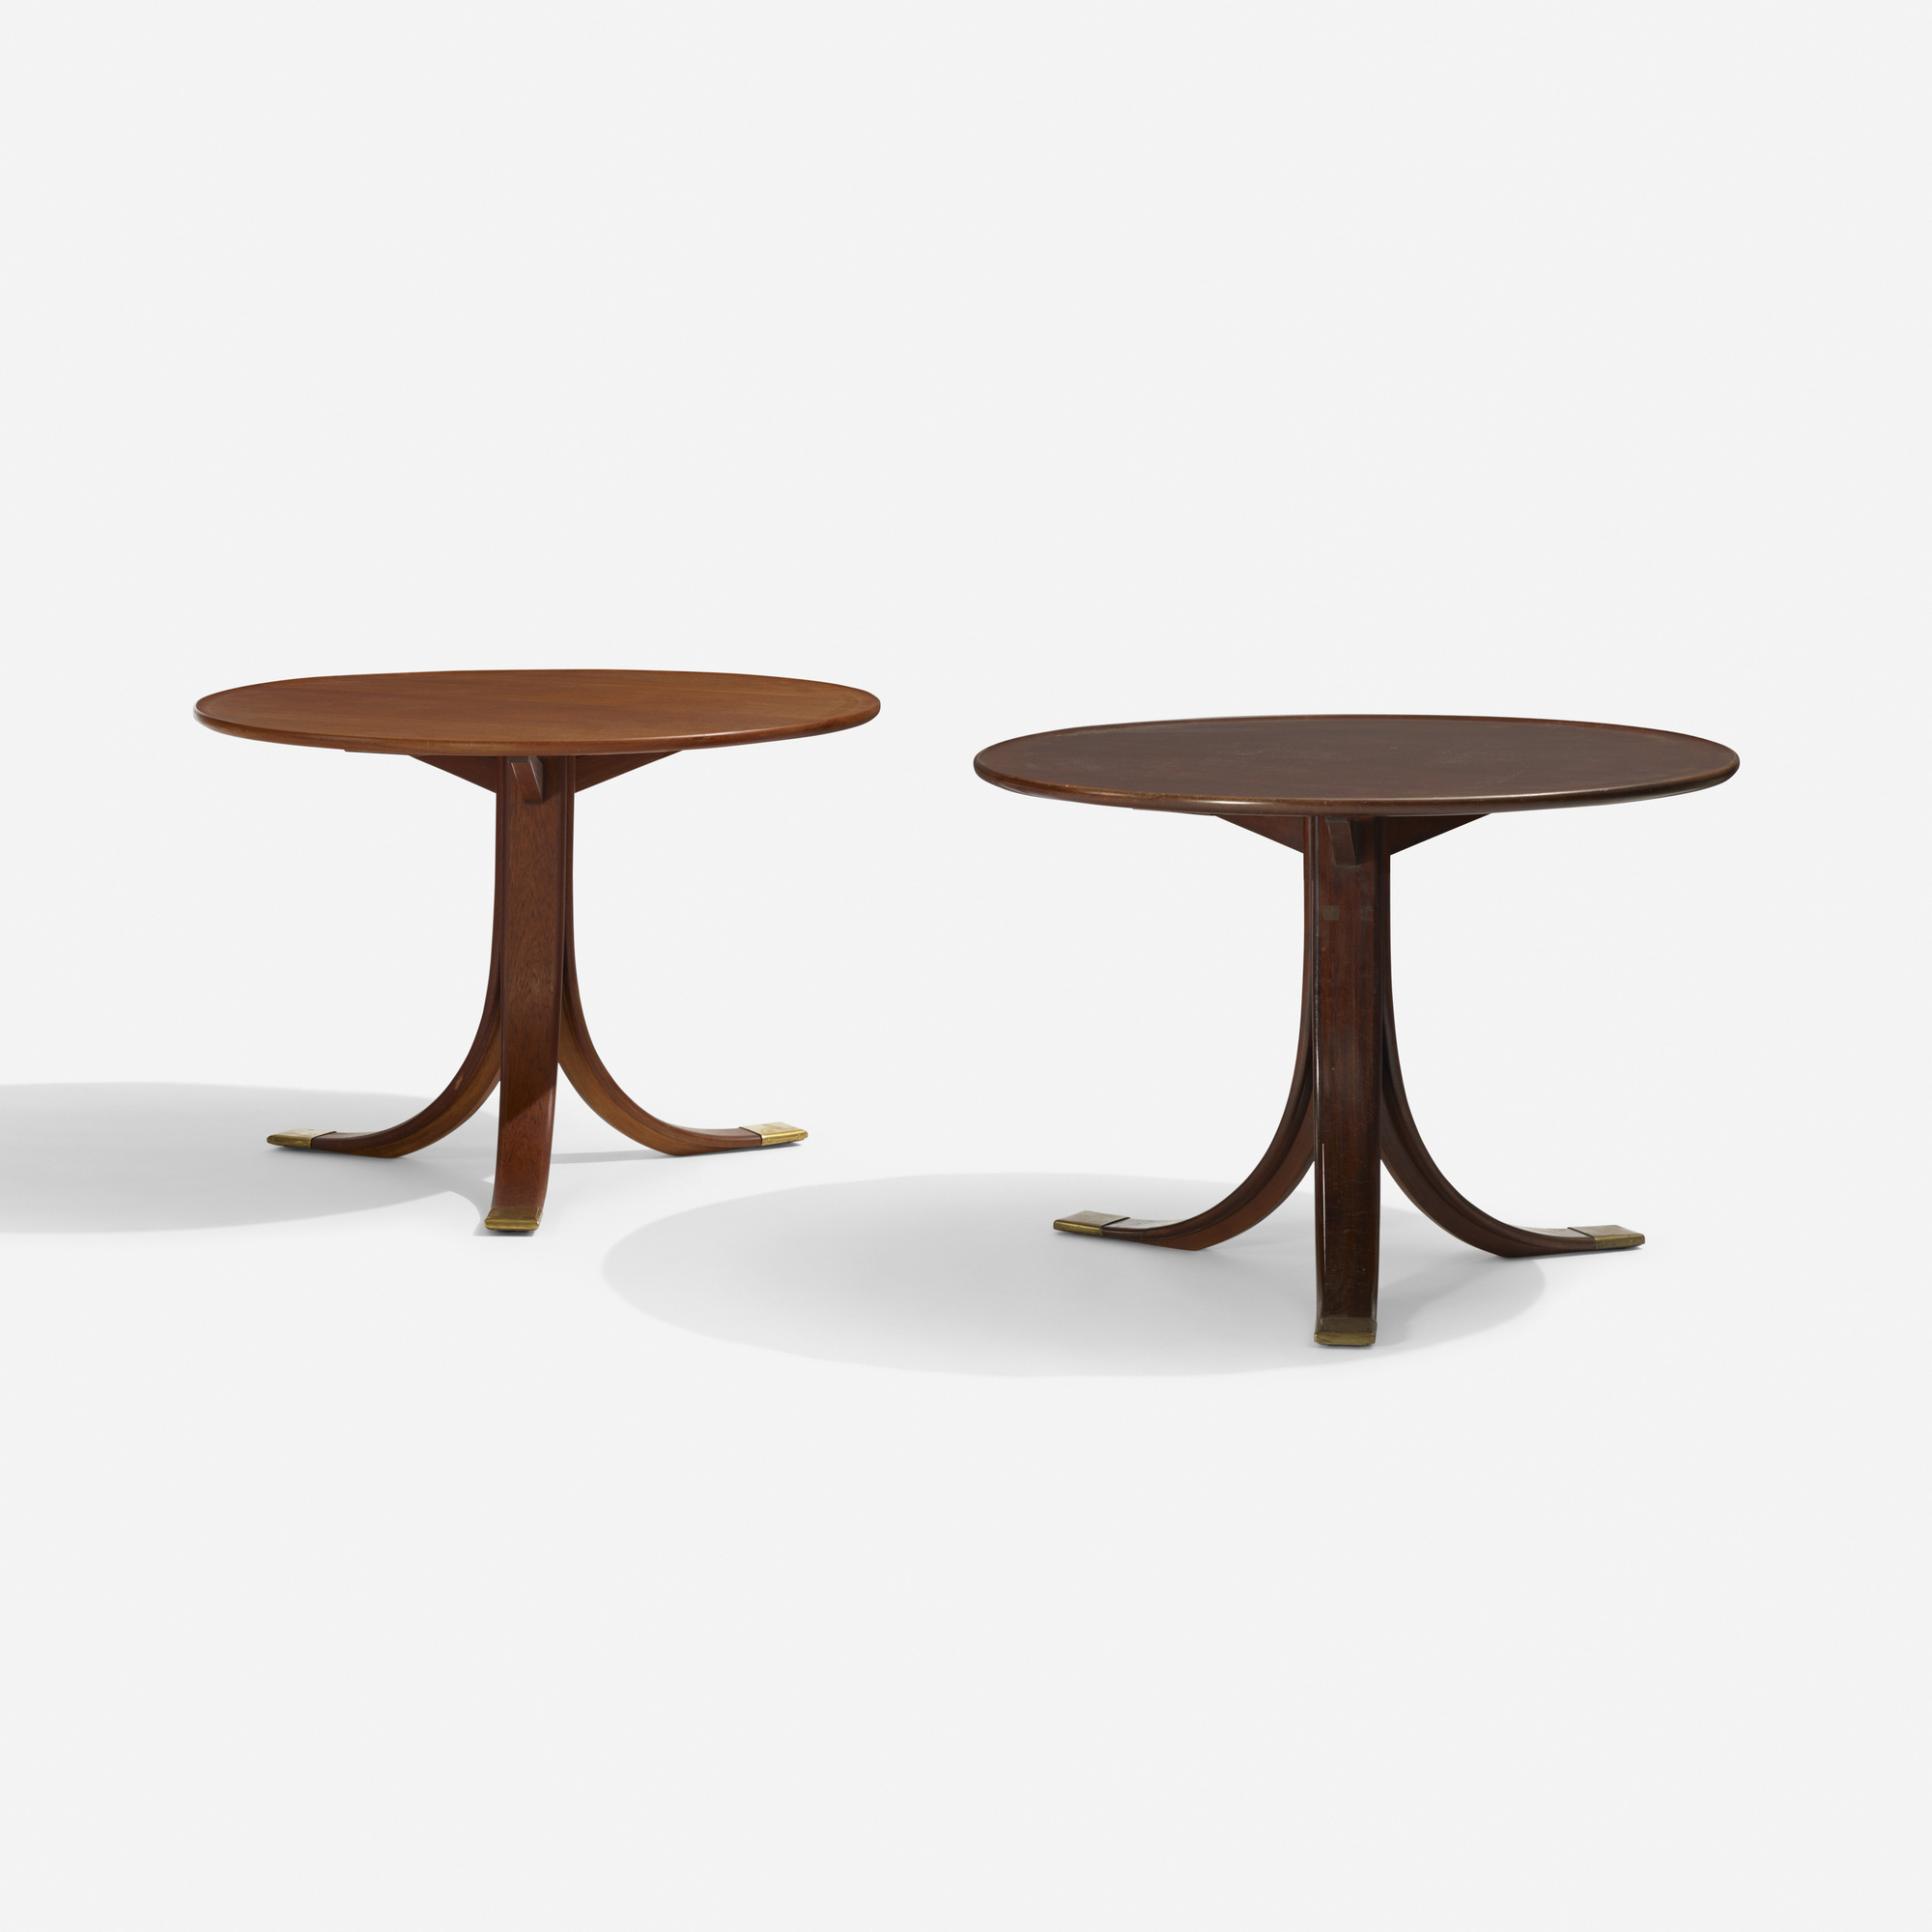 334: Frits Henningsen / occasional tables, set of two (1 of 2)